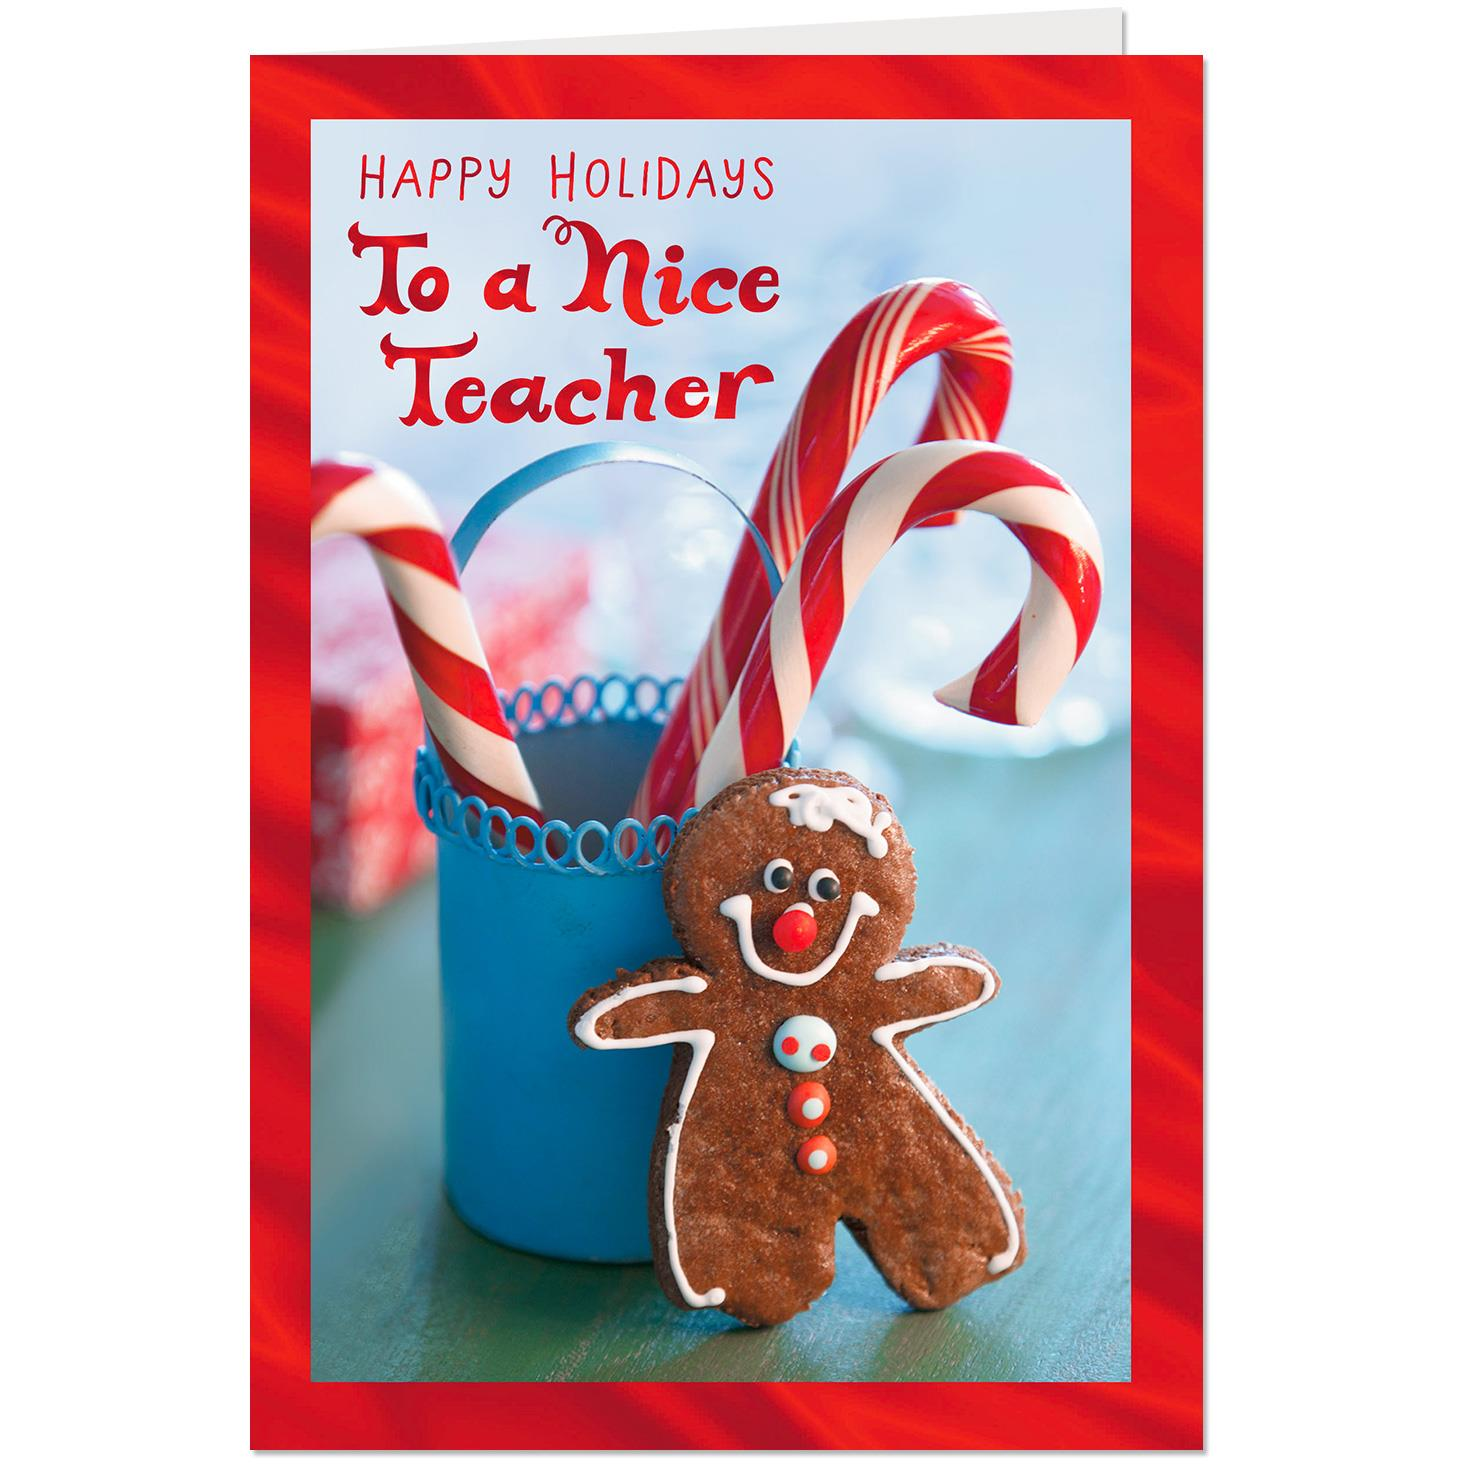 gingerbread cookie and candy canes christmas card for teacher